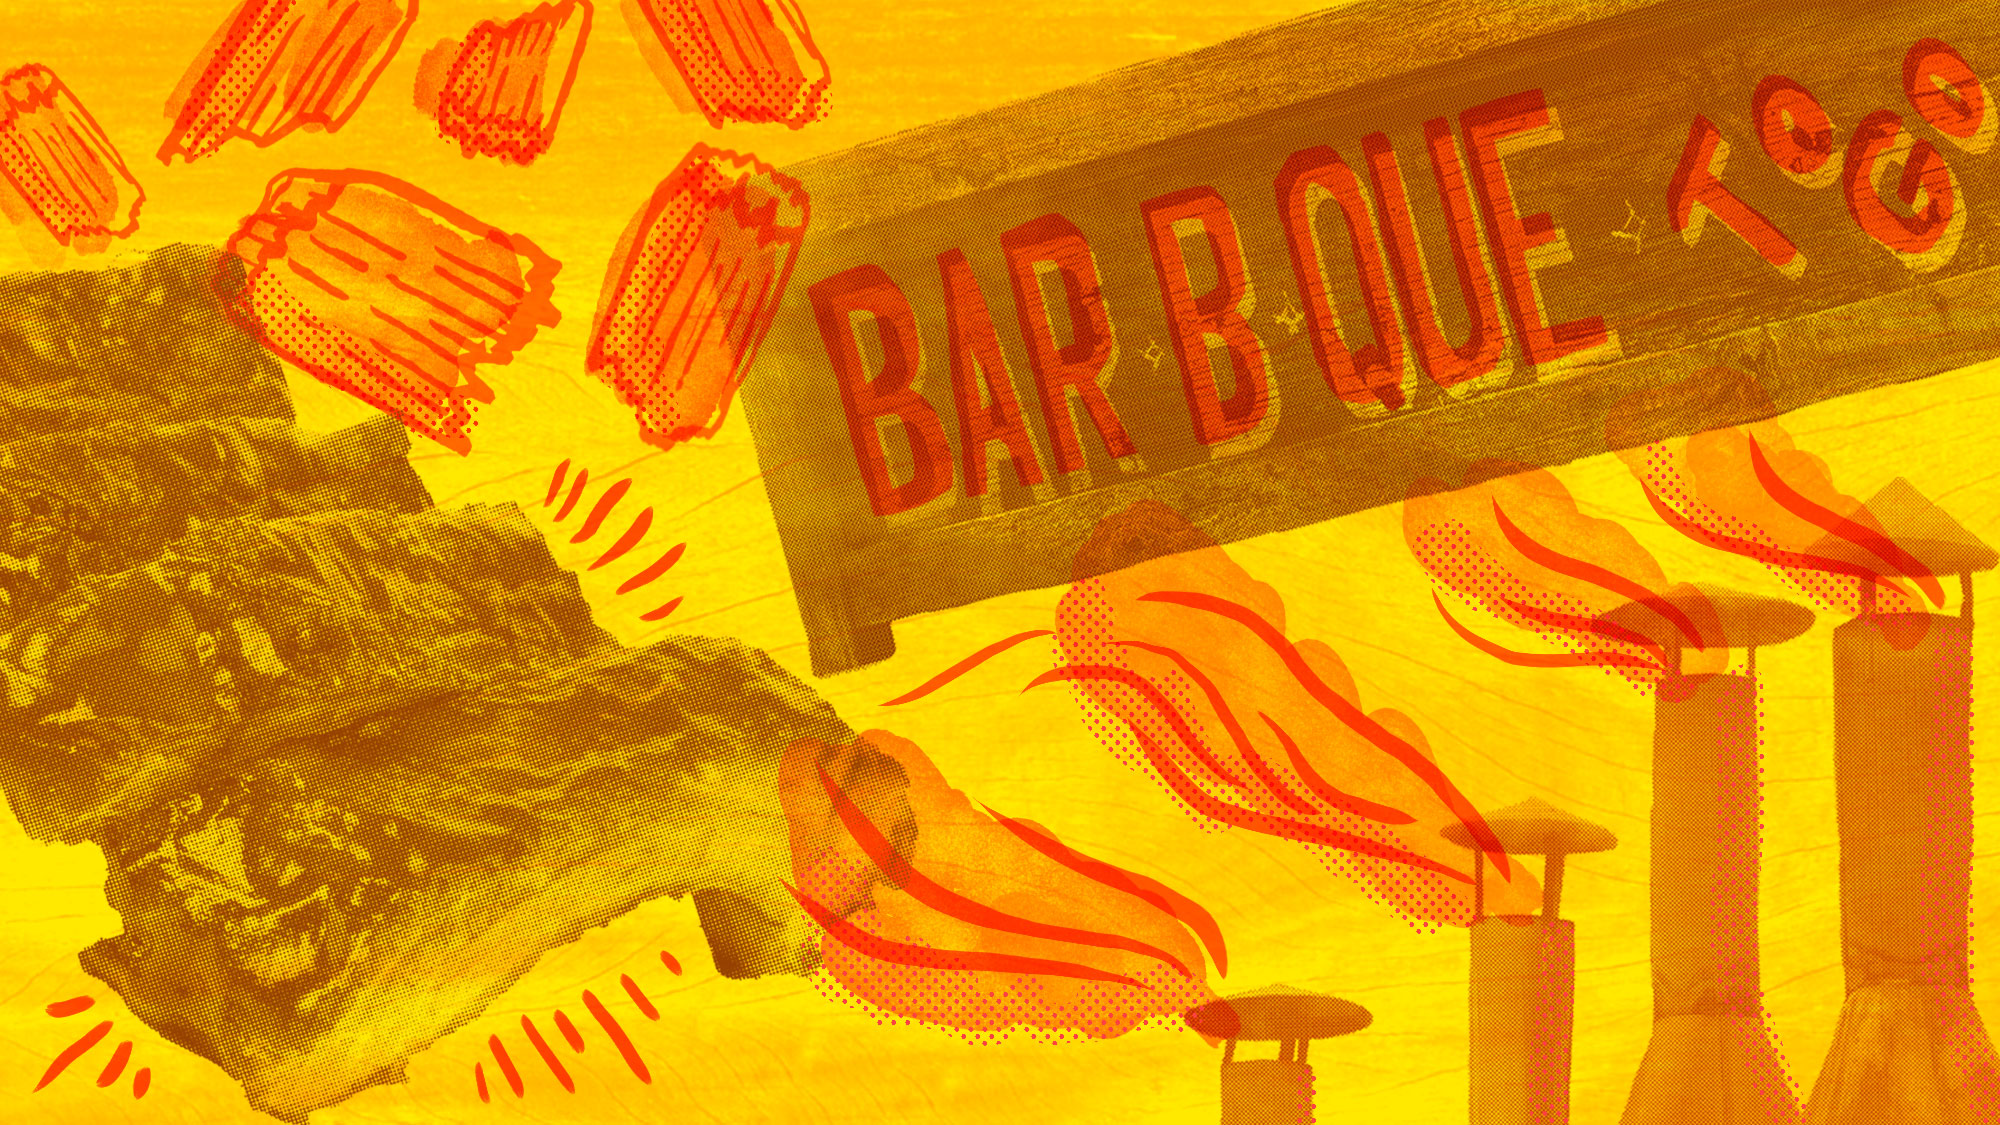 Barbecue 101: The Terms You Should Know